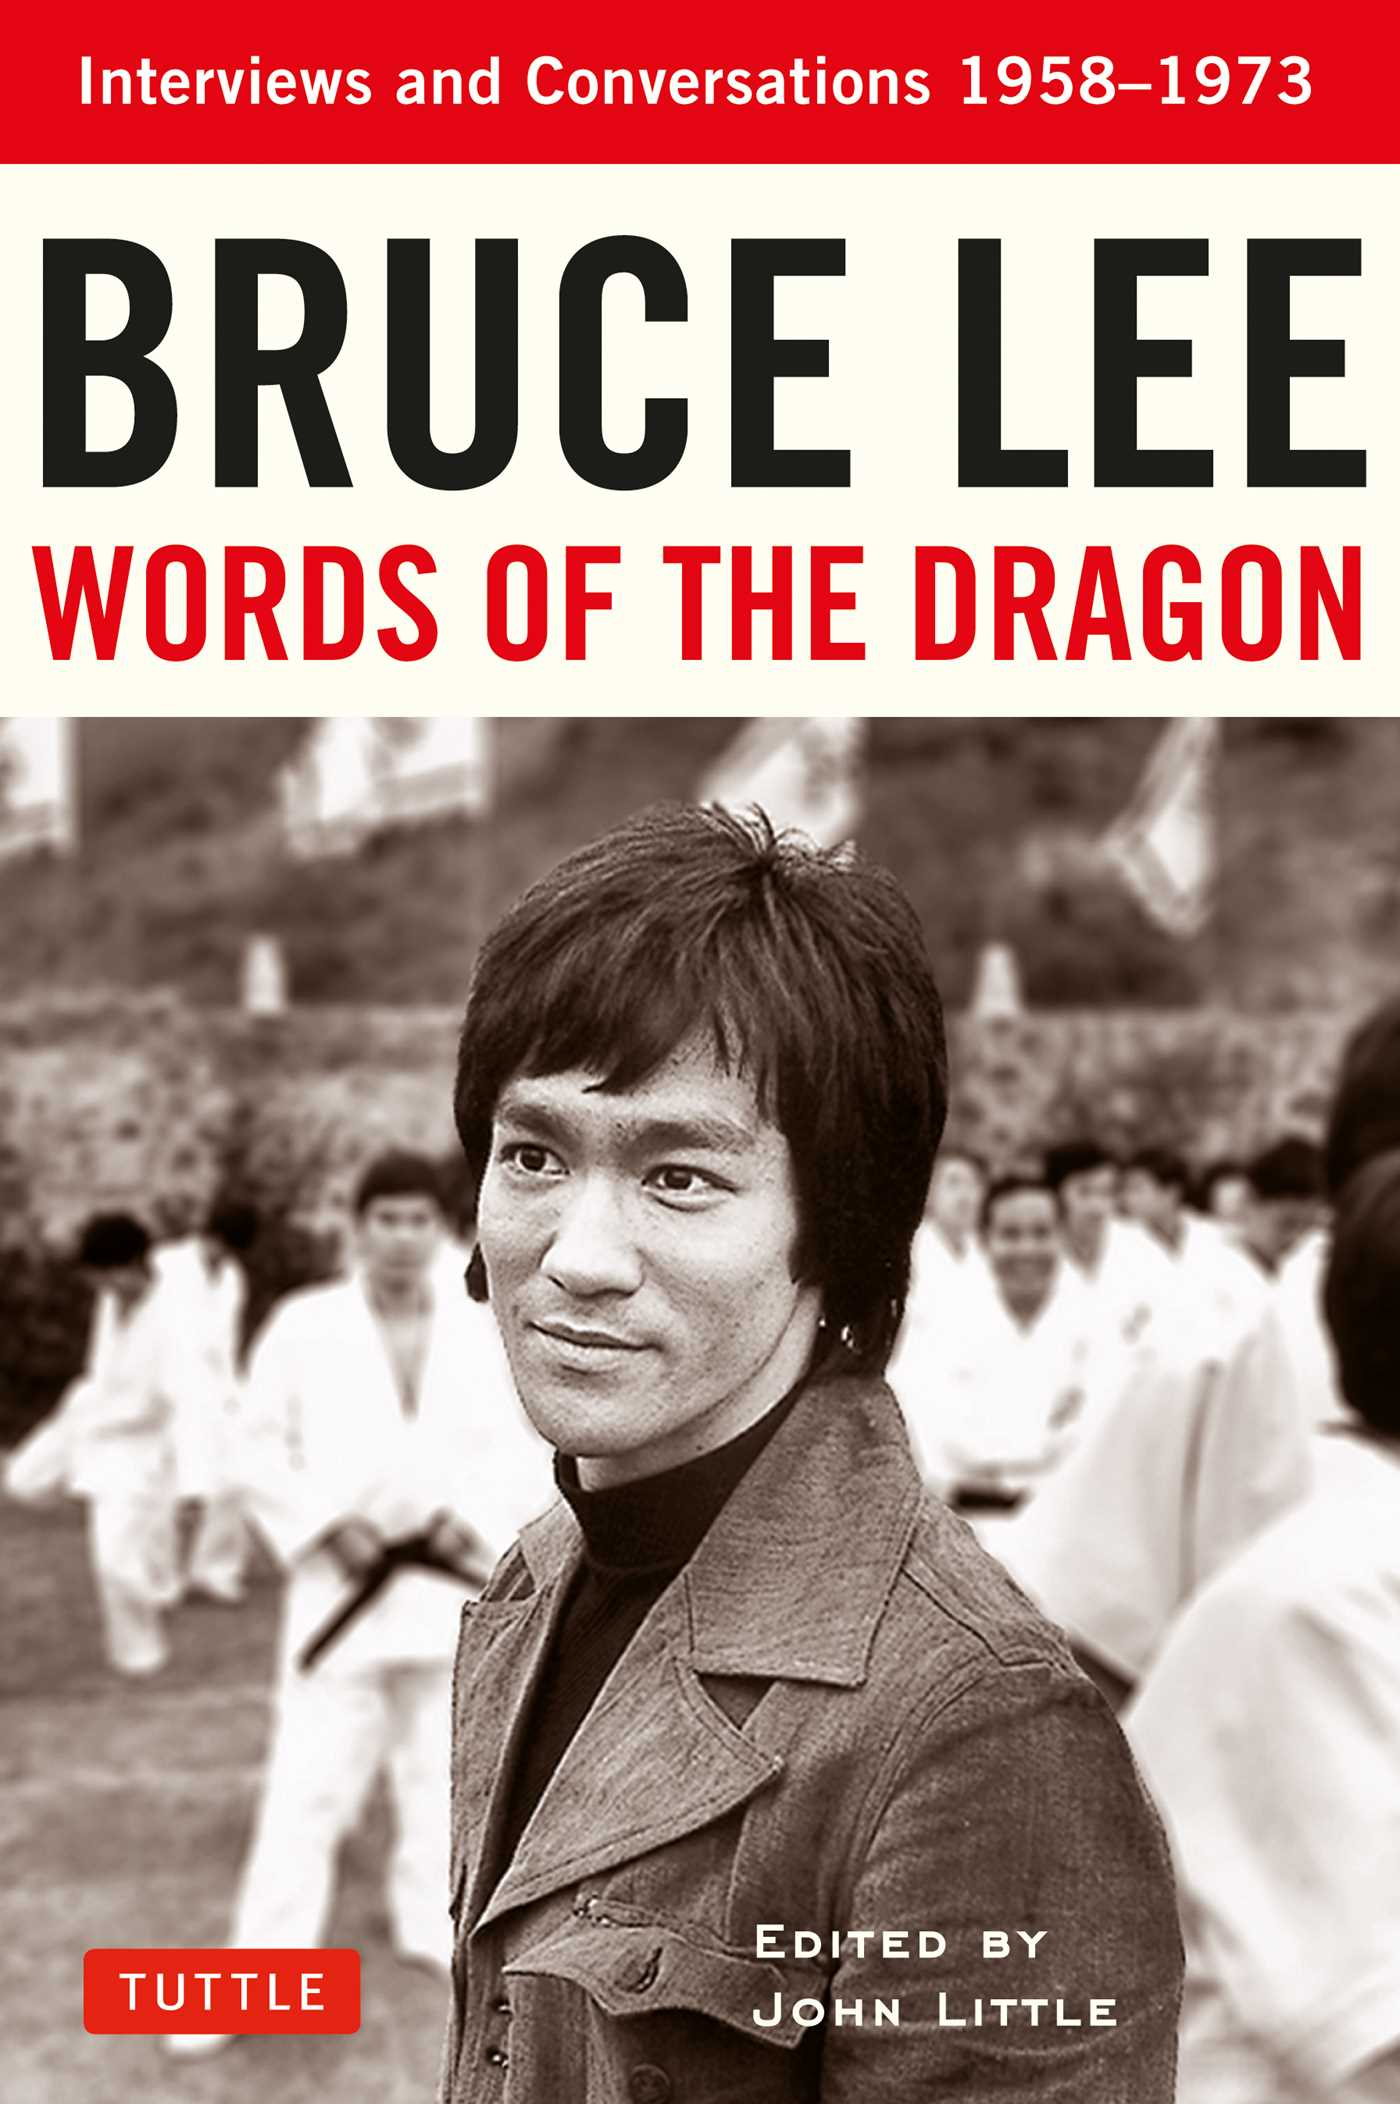 Bruce lee words of the dragon 9780804850001 hr